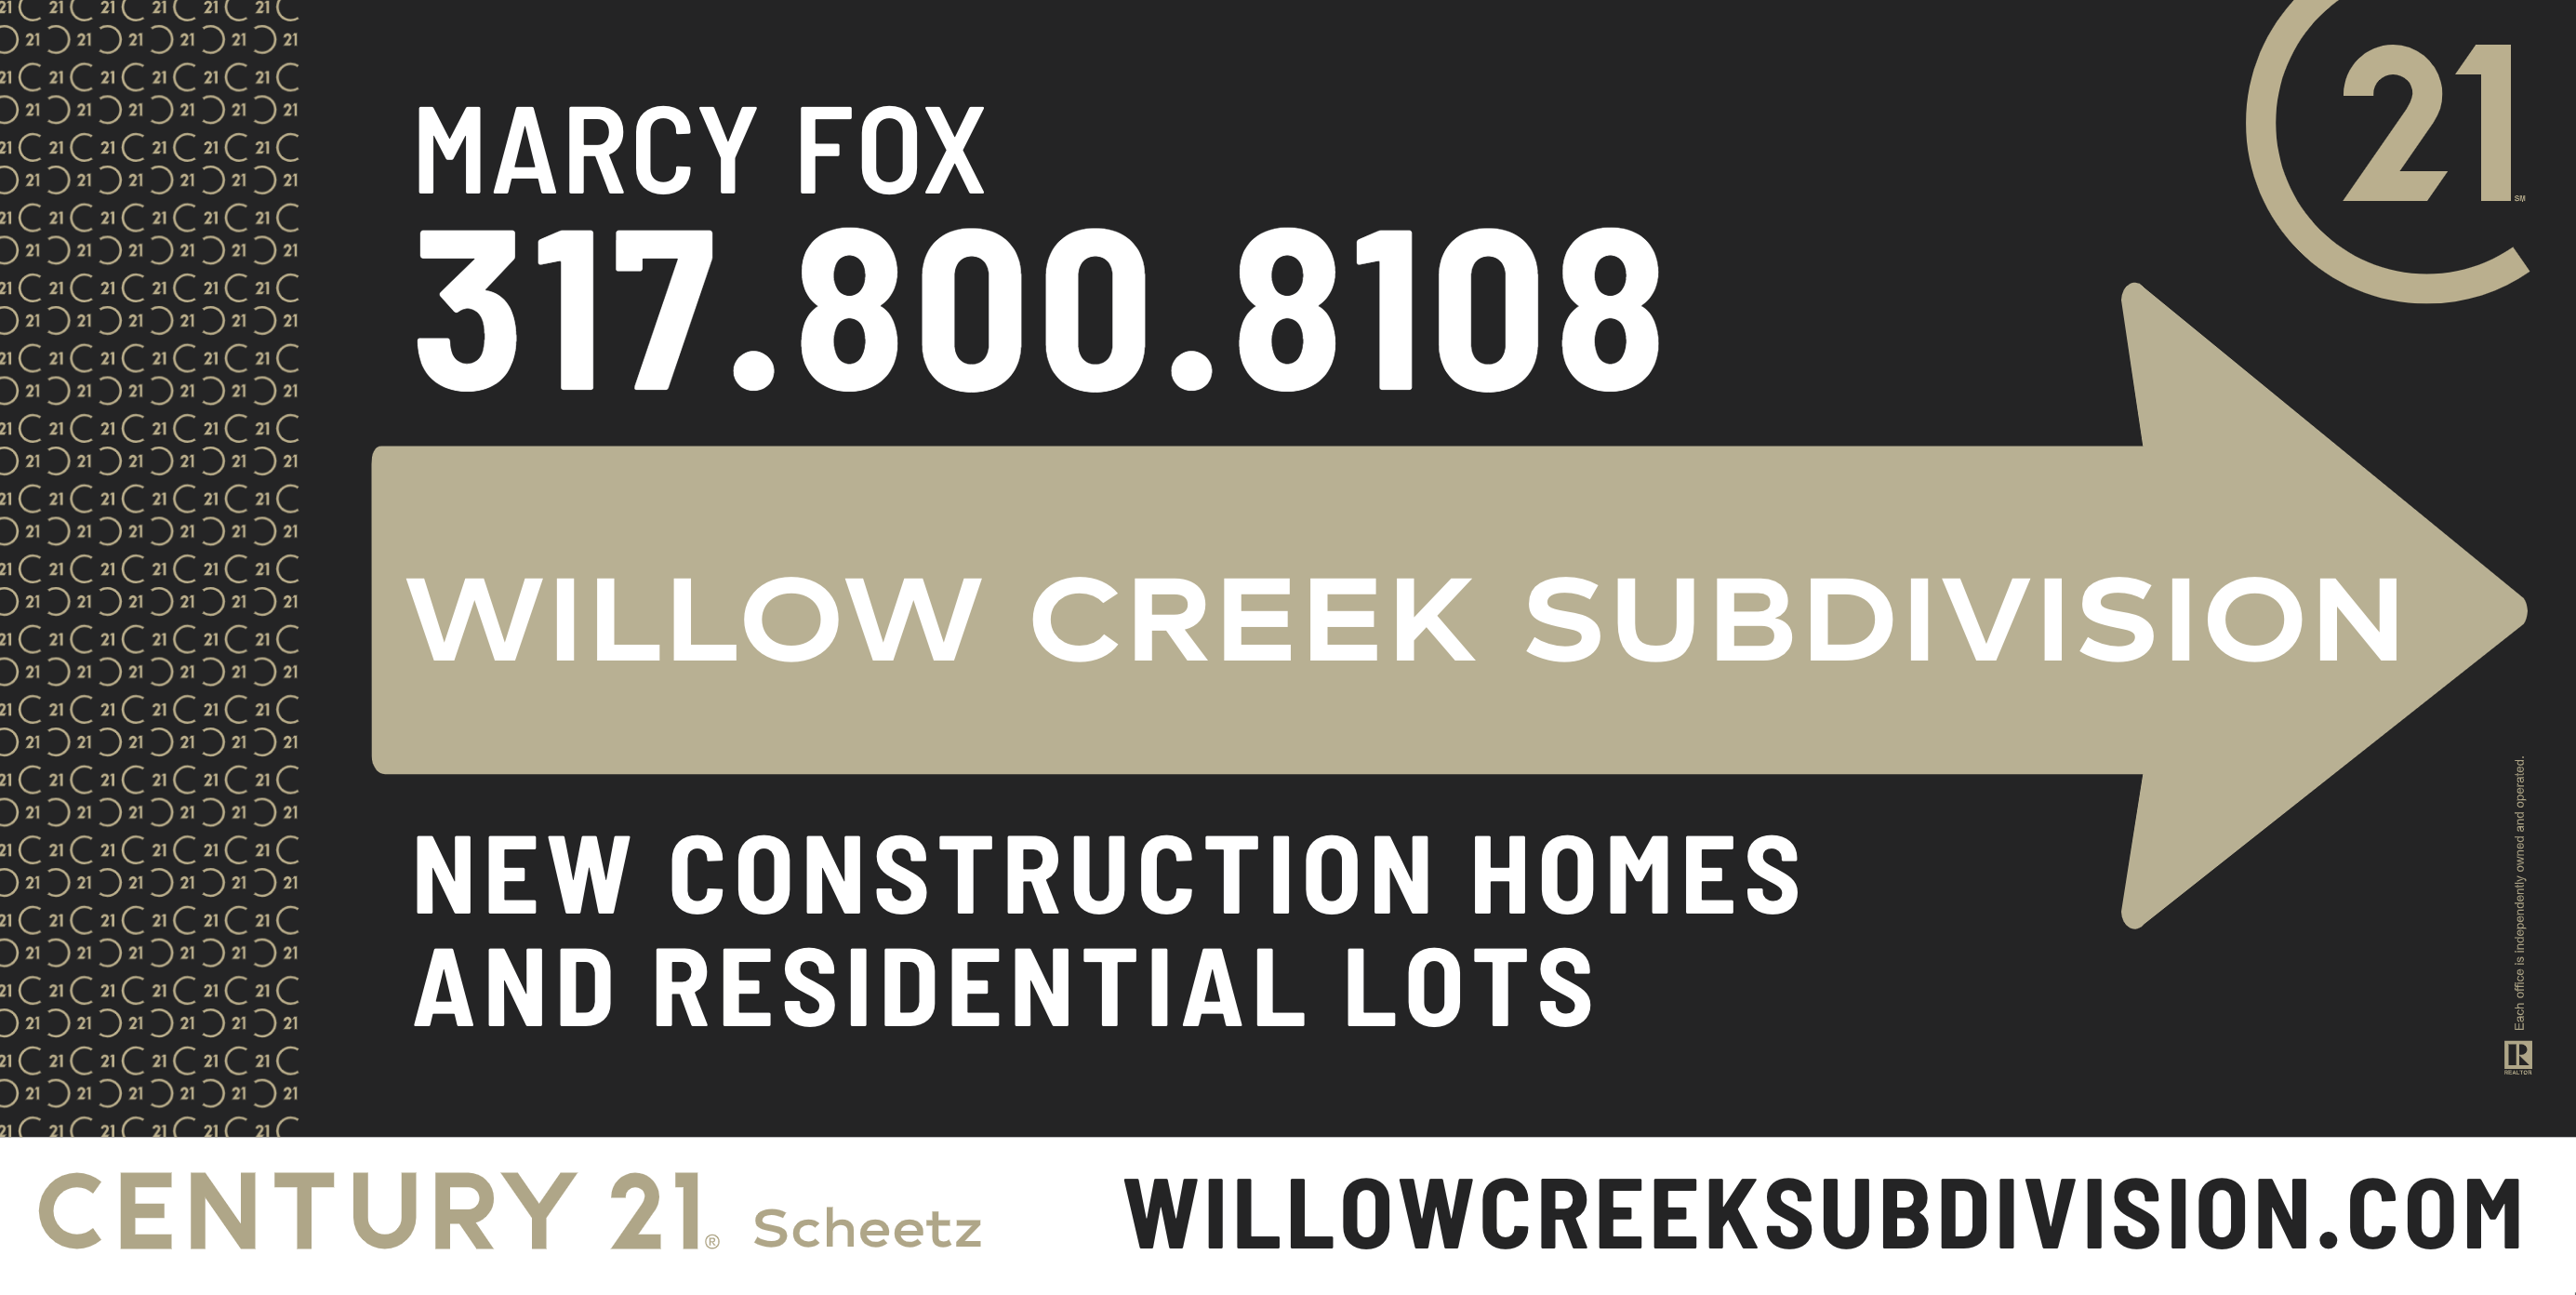 Willow Creek Subdivision Sign